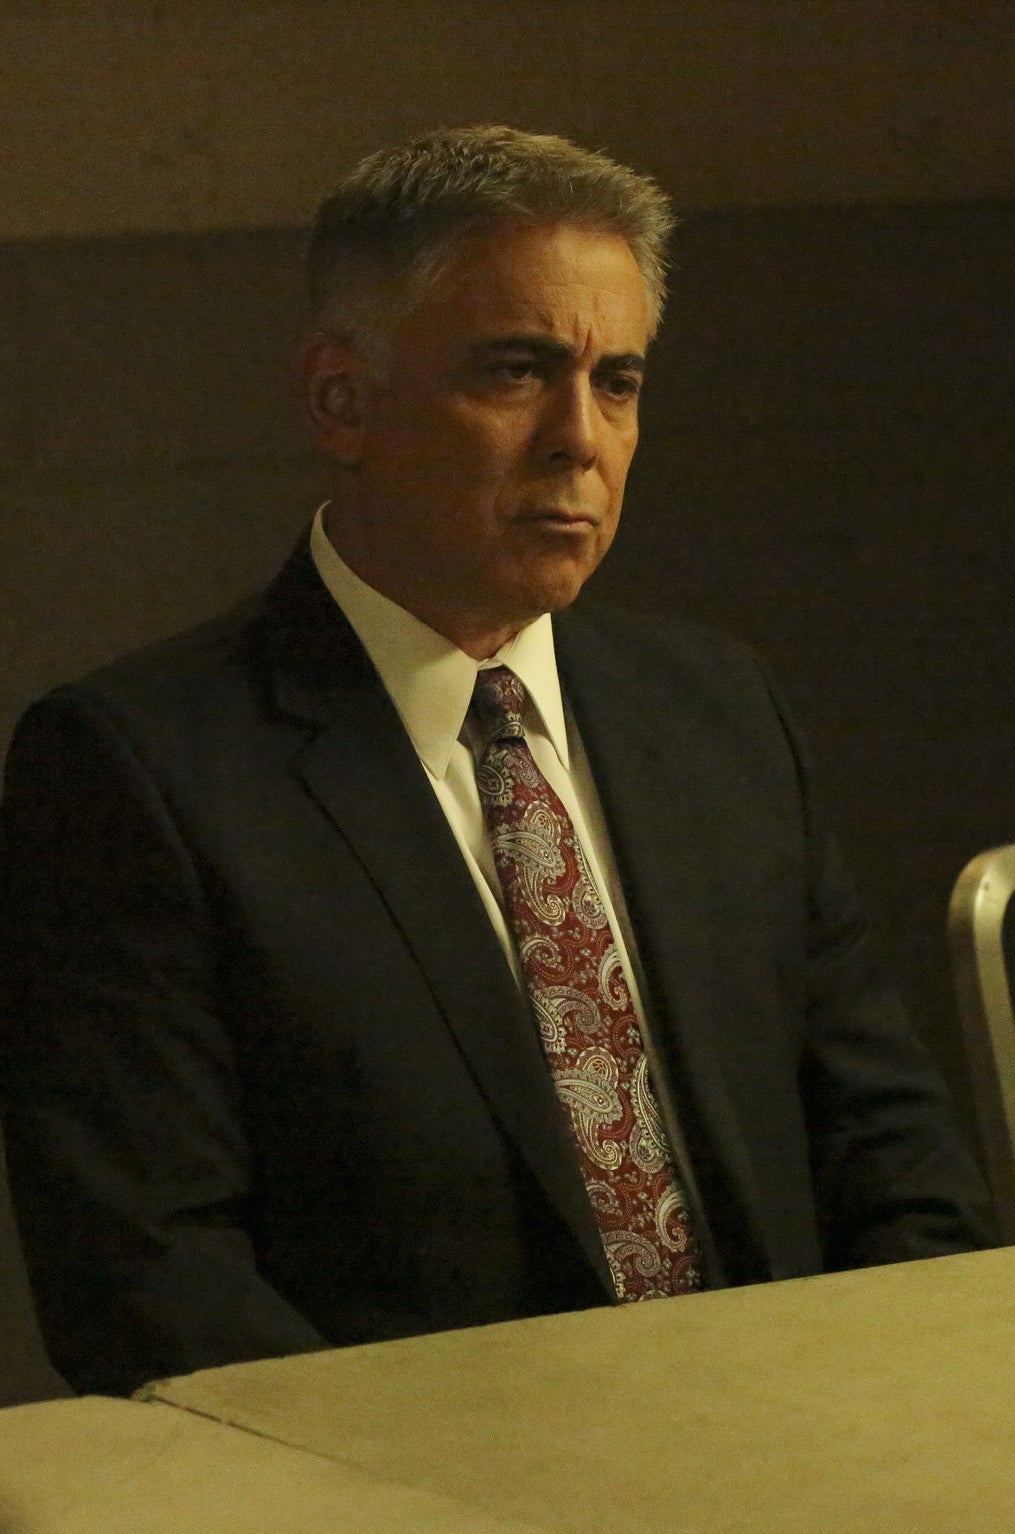 Adam Arkin as Wallace.